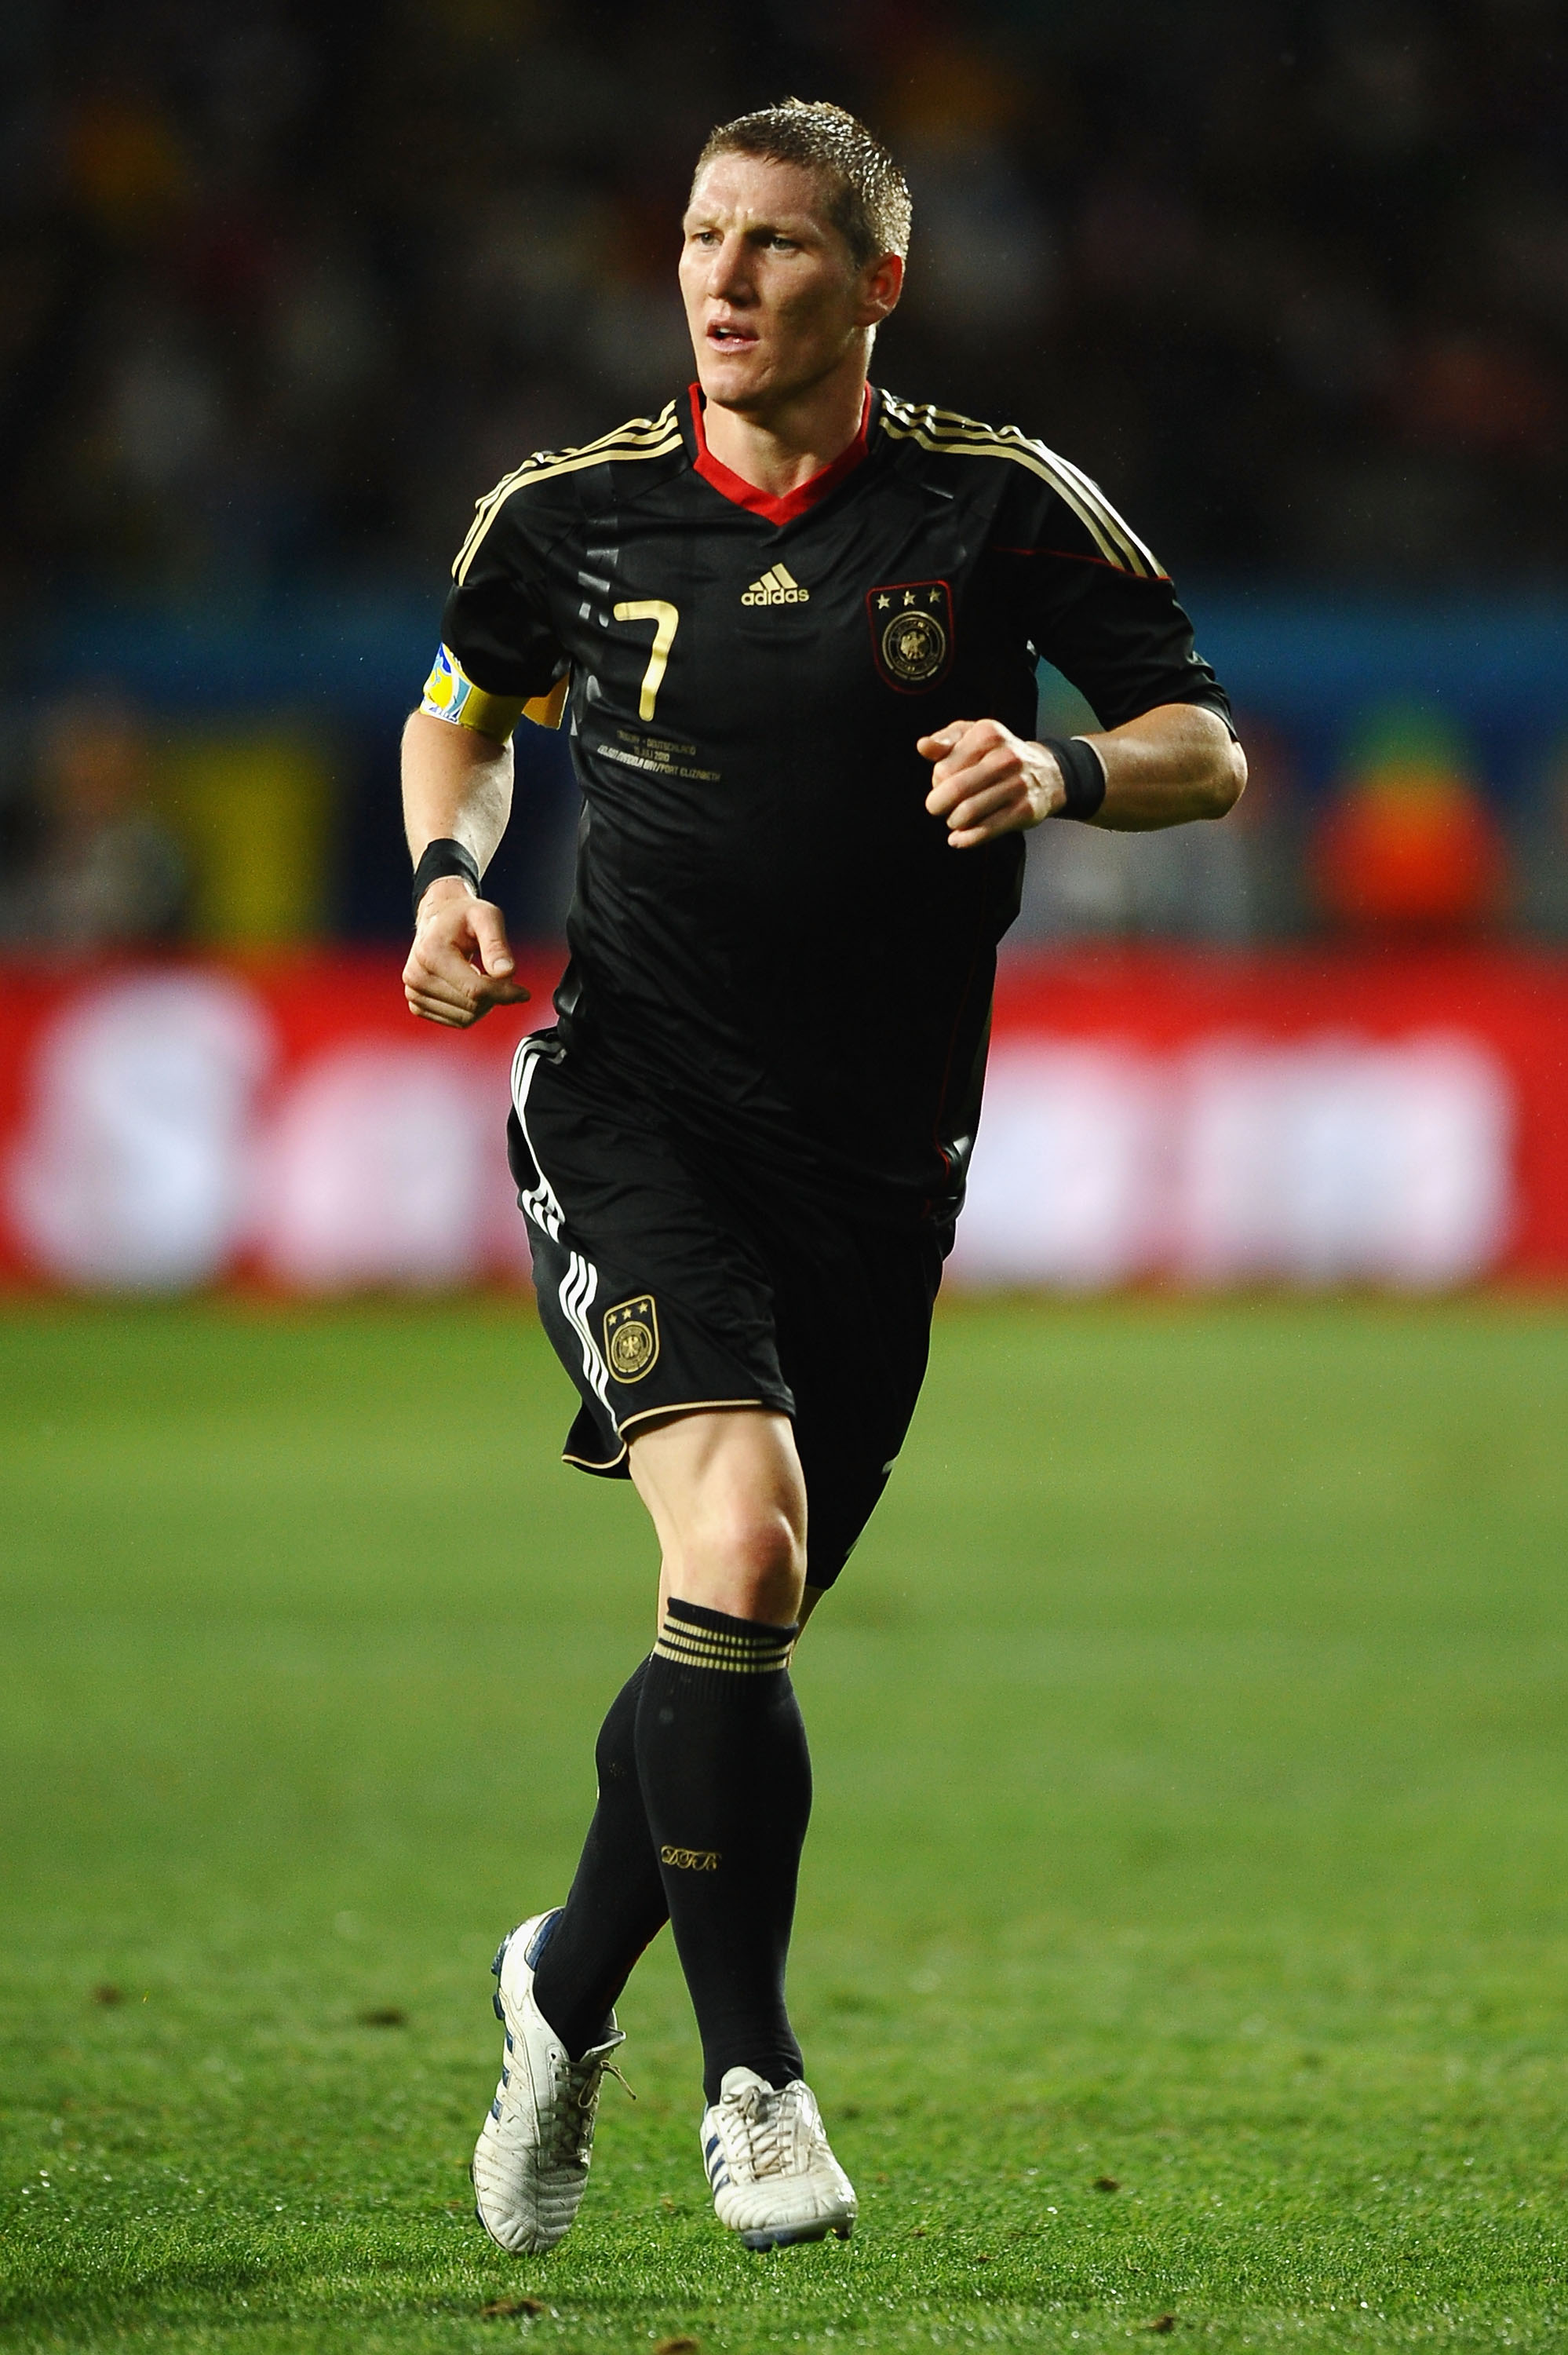 PORT ELIZABETH, SOUTH AFRICA - JULY 10:  Bastian Schweinsteiger of Germany in action during the 2010 FIFA World Cup South Africa Third Place Play-off match between Uruguay and Germany at The Nelson Mandela Bay Stadium on July 10, 2010 in Port Elizabeth, S